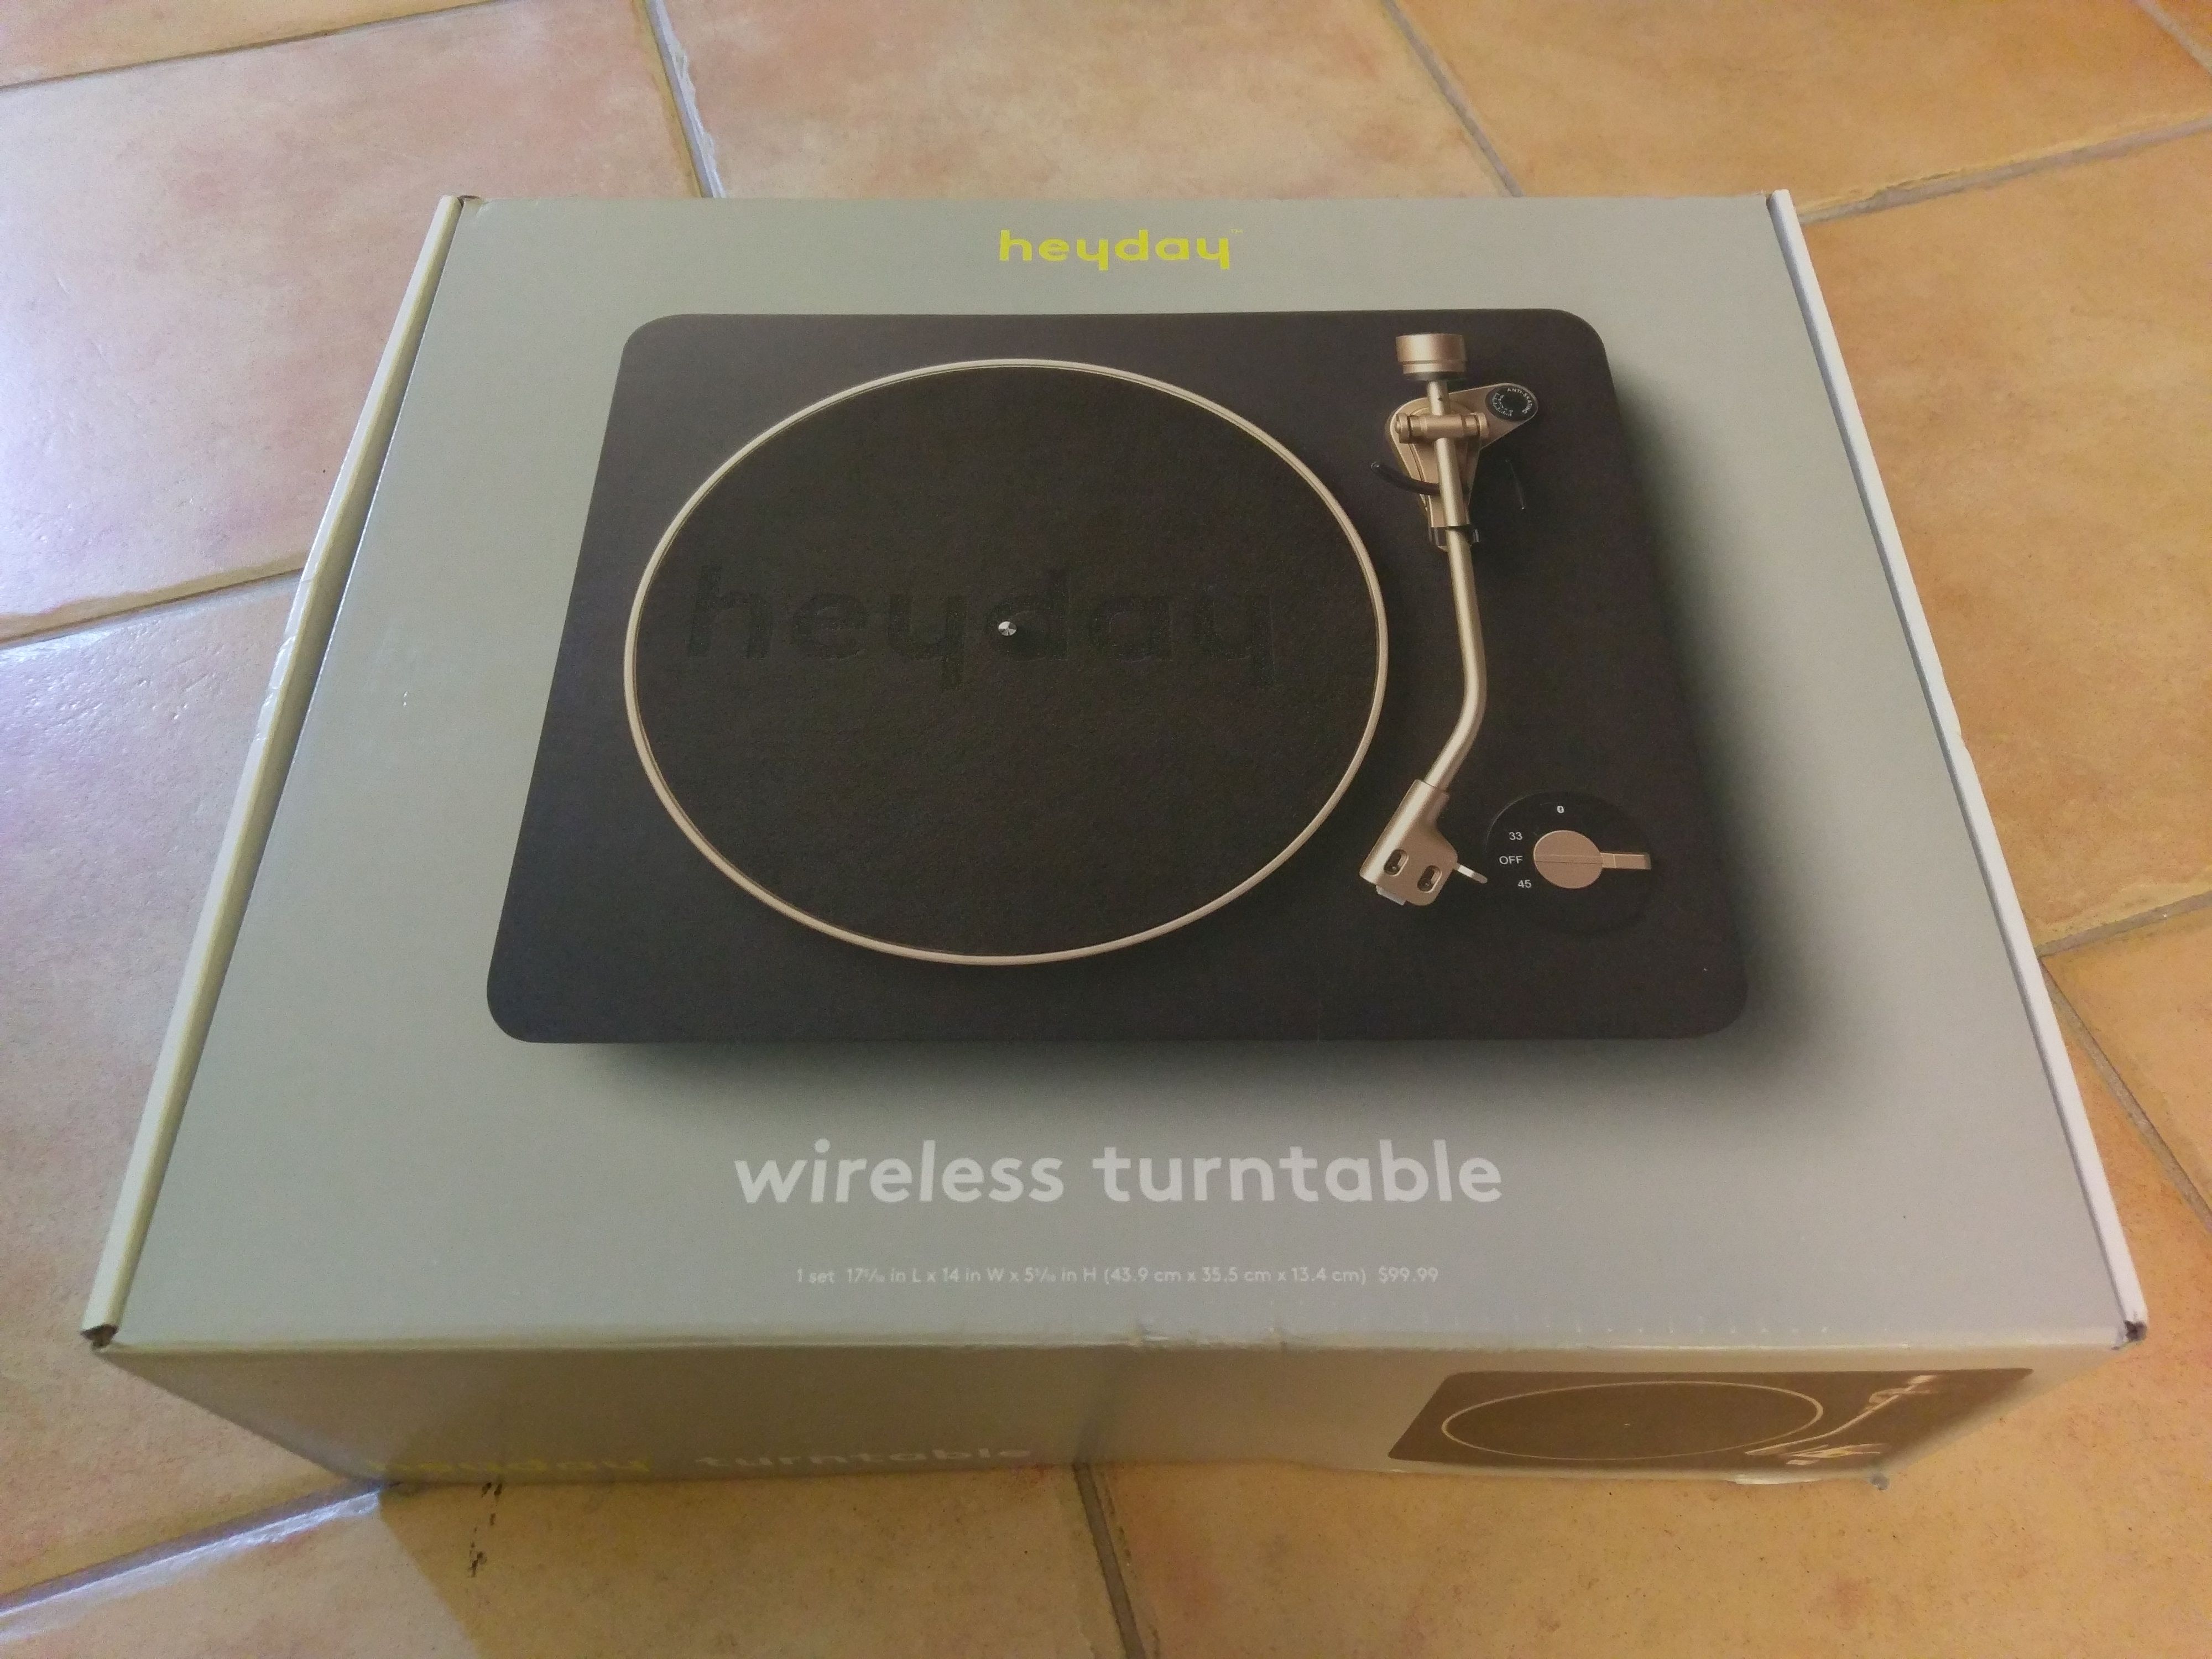 Heyday Turntable | Reviews | Headphone Reviews and